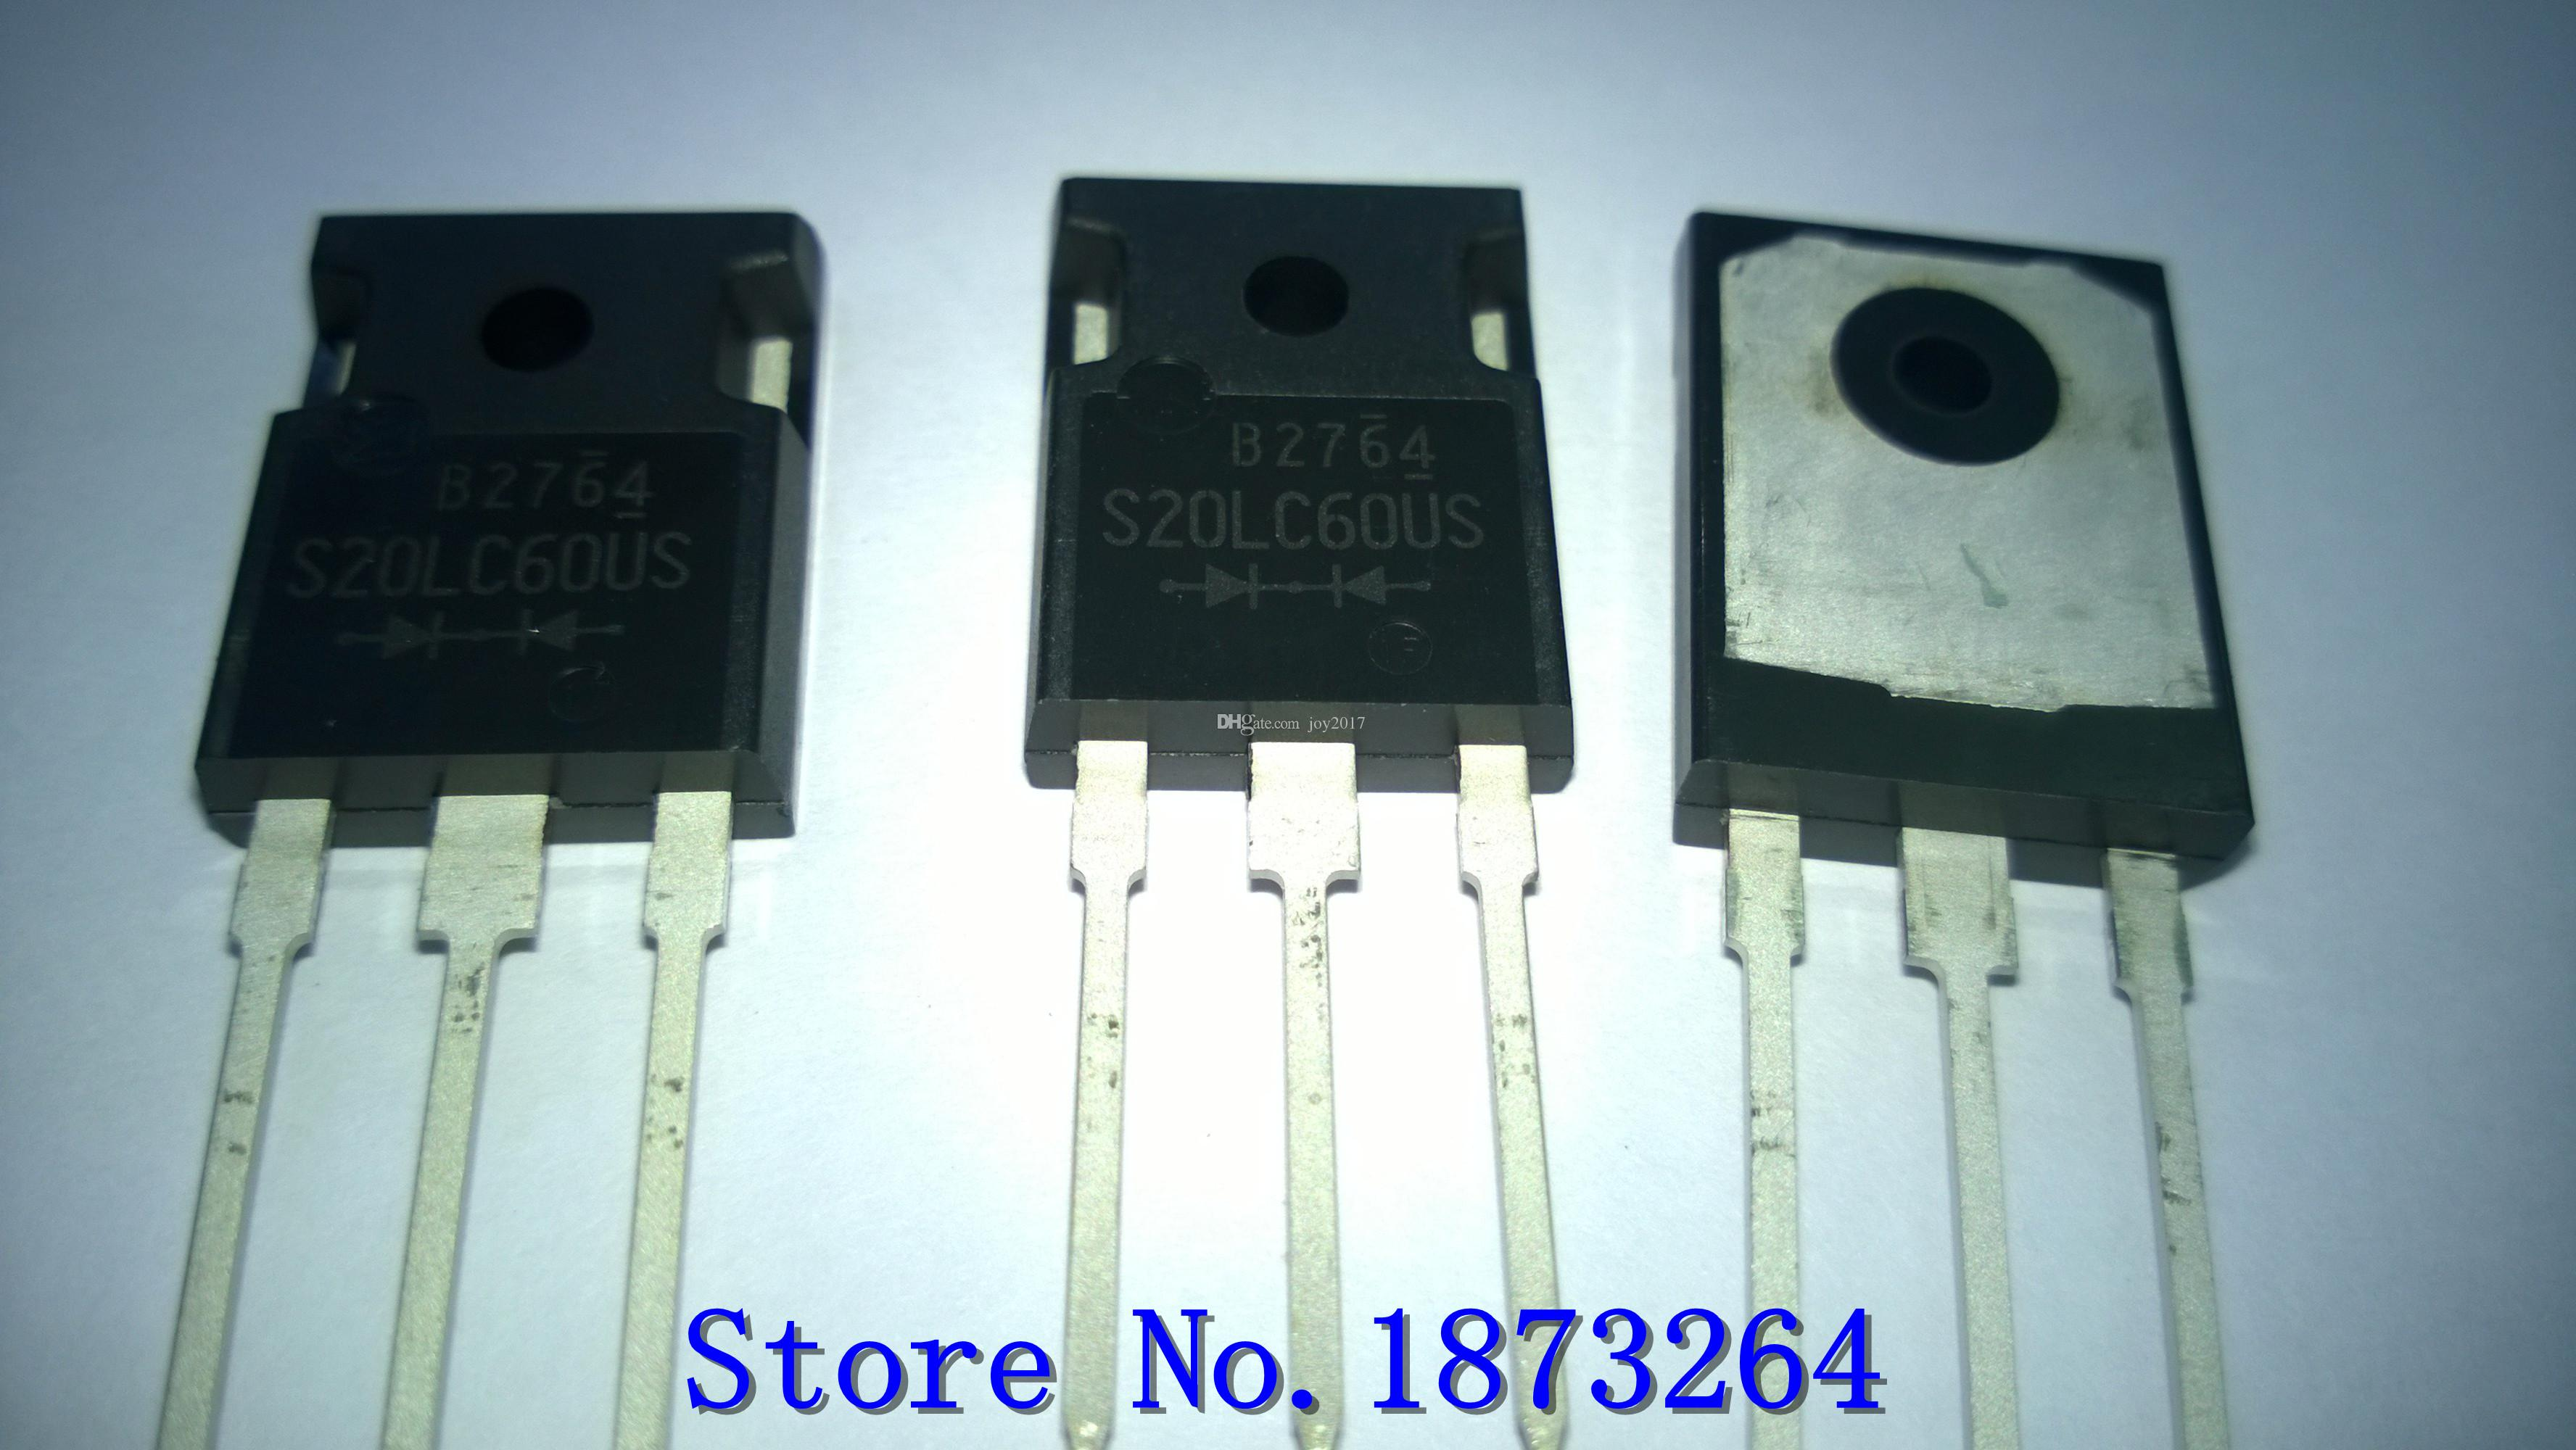 Free shipping S20LC60US 20LC60 S20LC60 TO3P New and original 10PCS/LOT